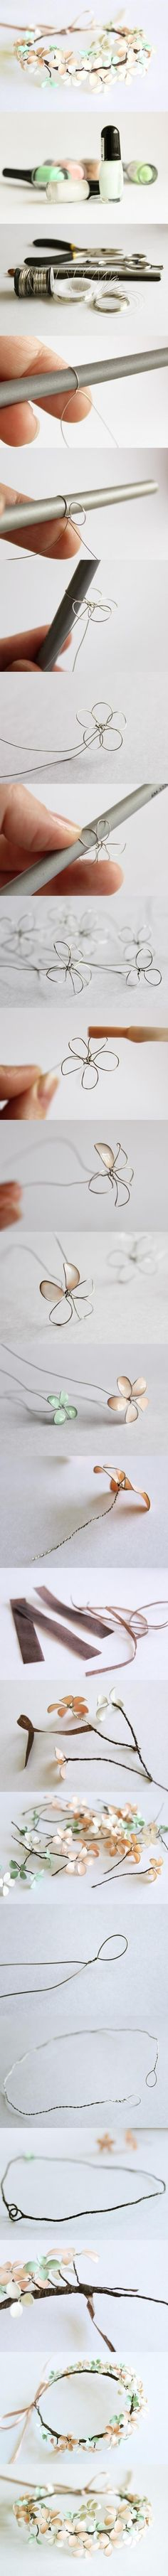 Thin wire + nail polish = flowers